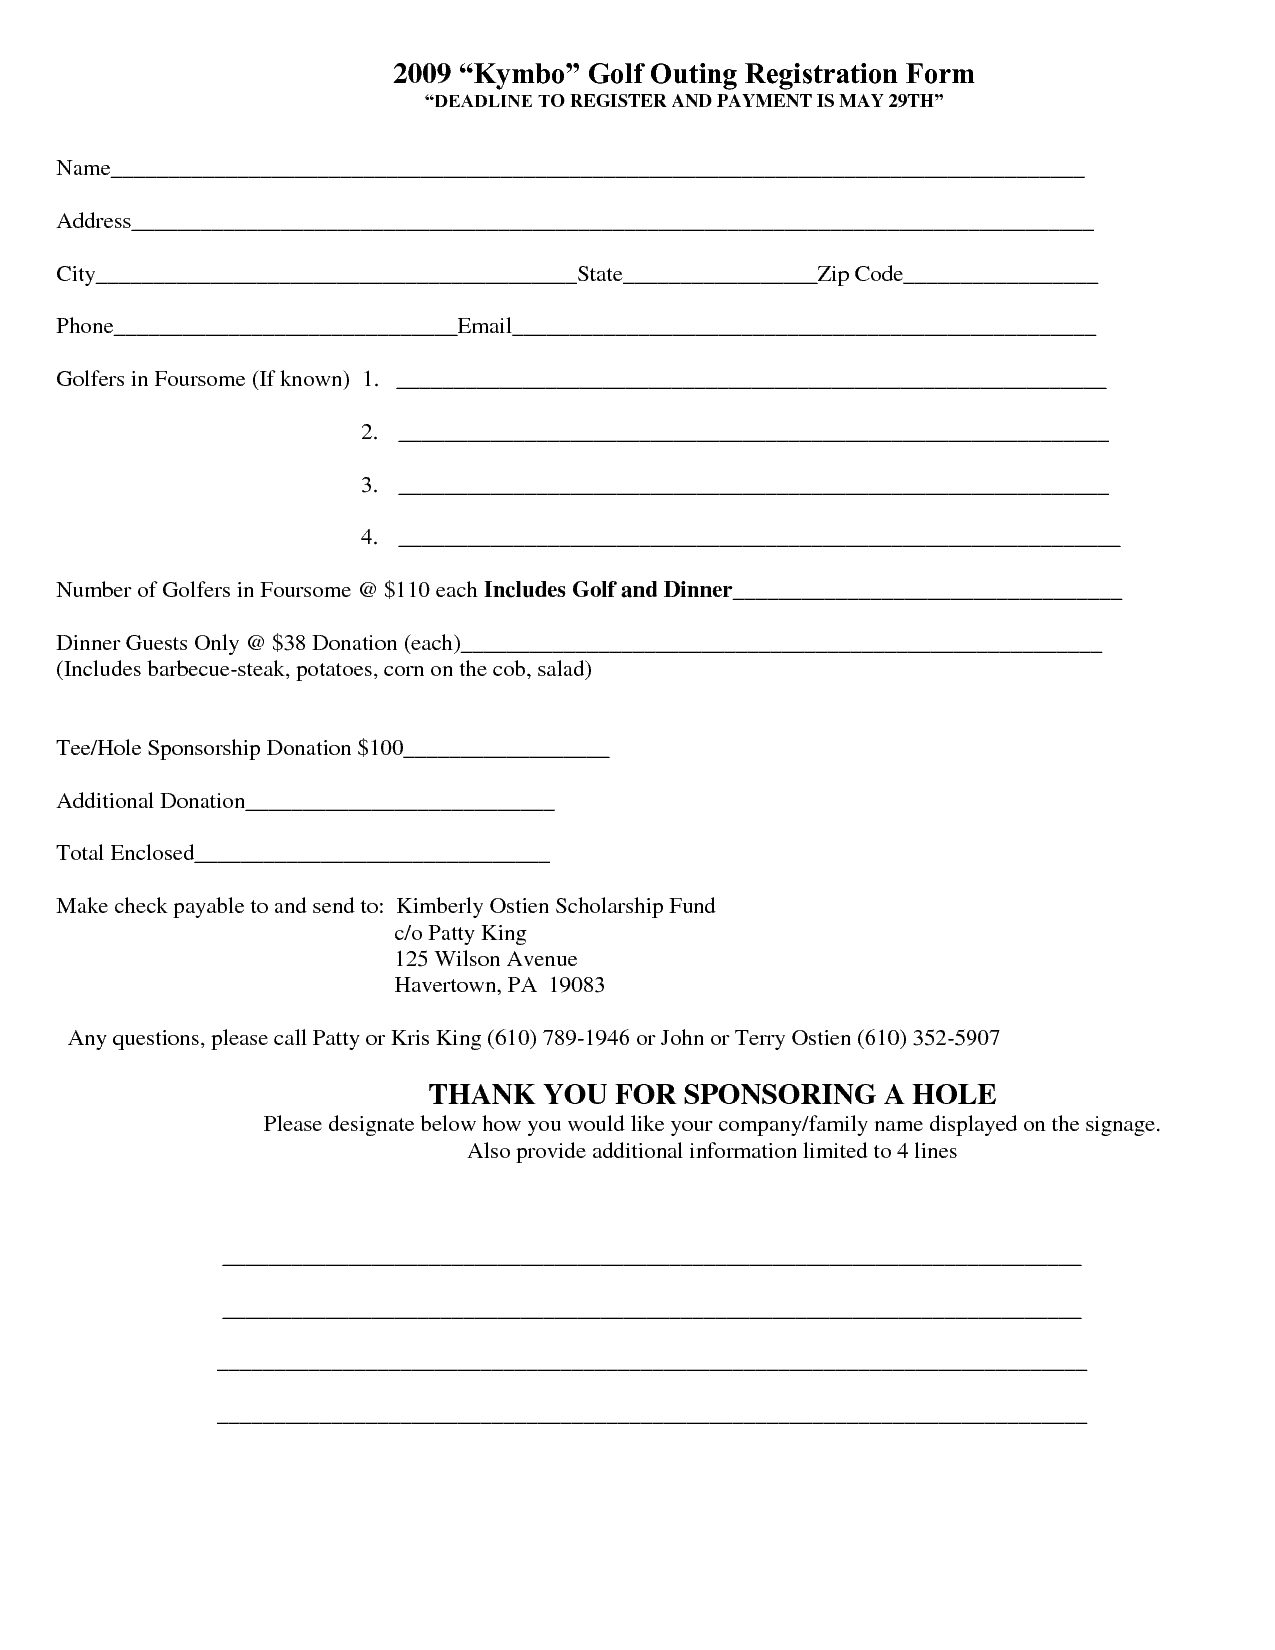 5 Registration Form Templates Word Word Templates